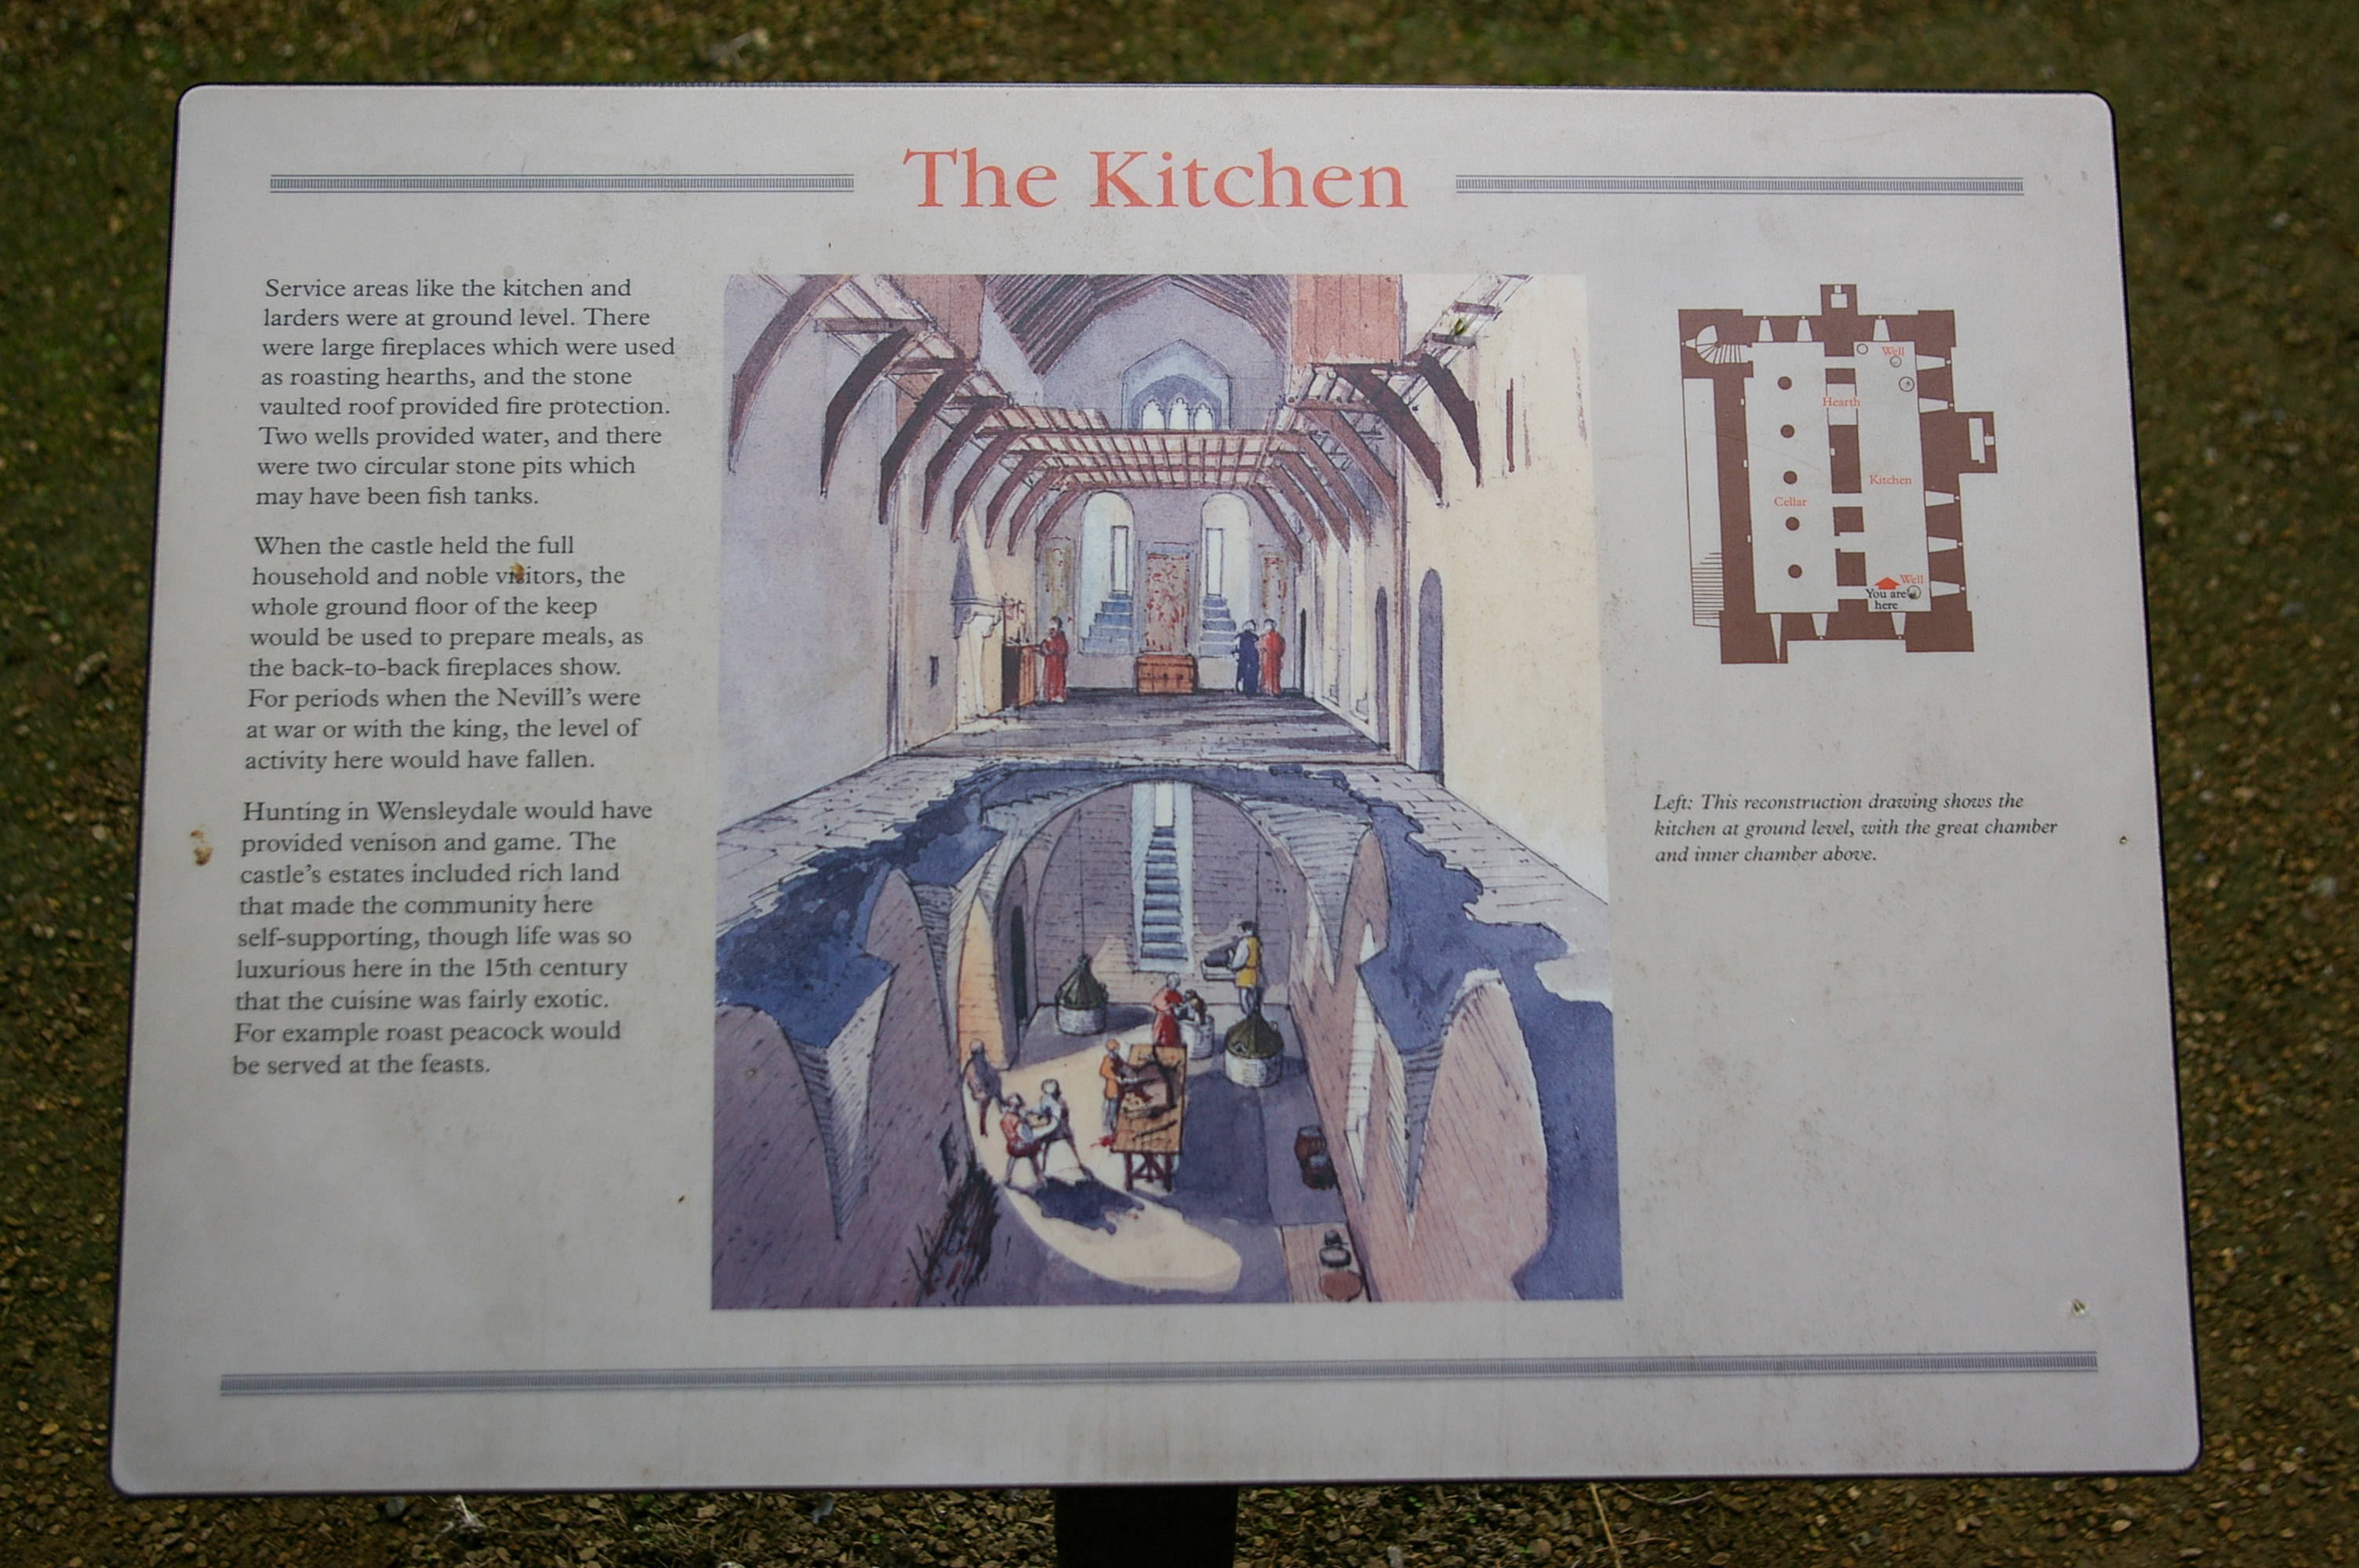 descriptive essay about food court Descriptive essay - childhood scene  there was one tennis court on site but it was rarely  and the smell of good food on every street that you walked along.